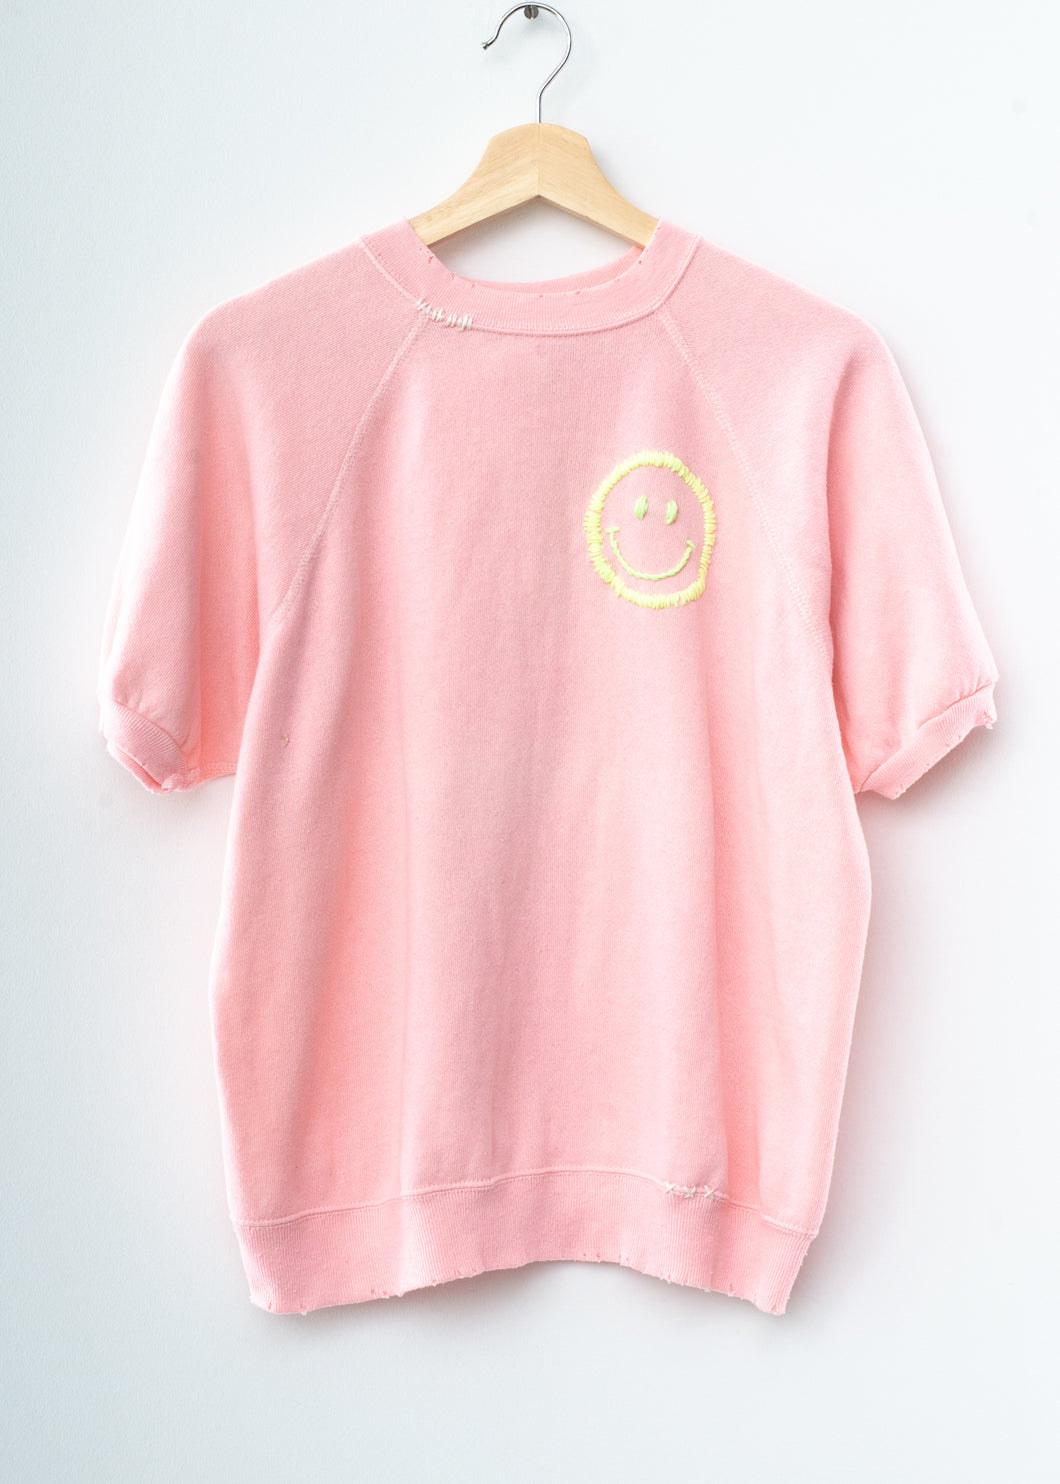 Happy Face Shorty Sweatshirt - Ballet Pink